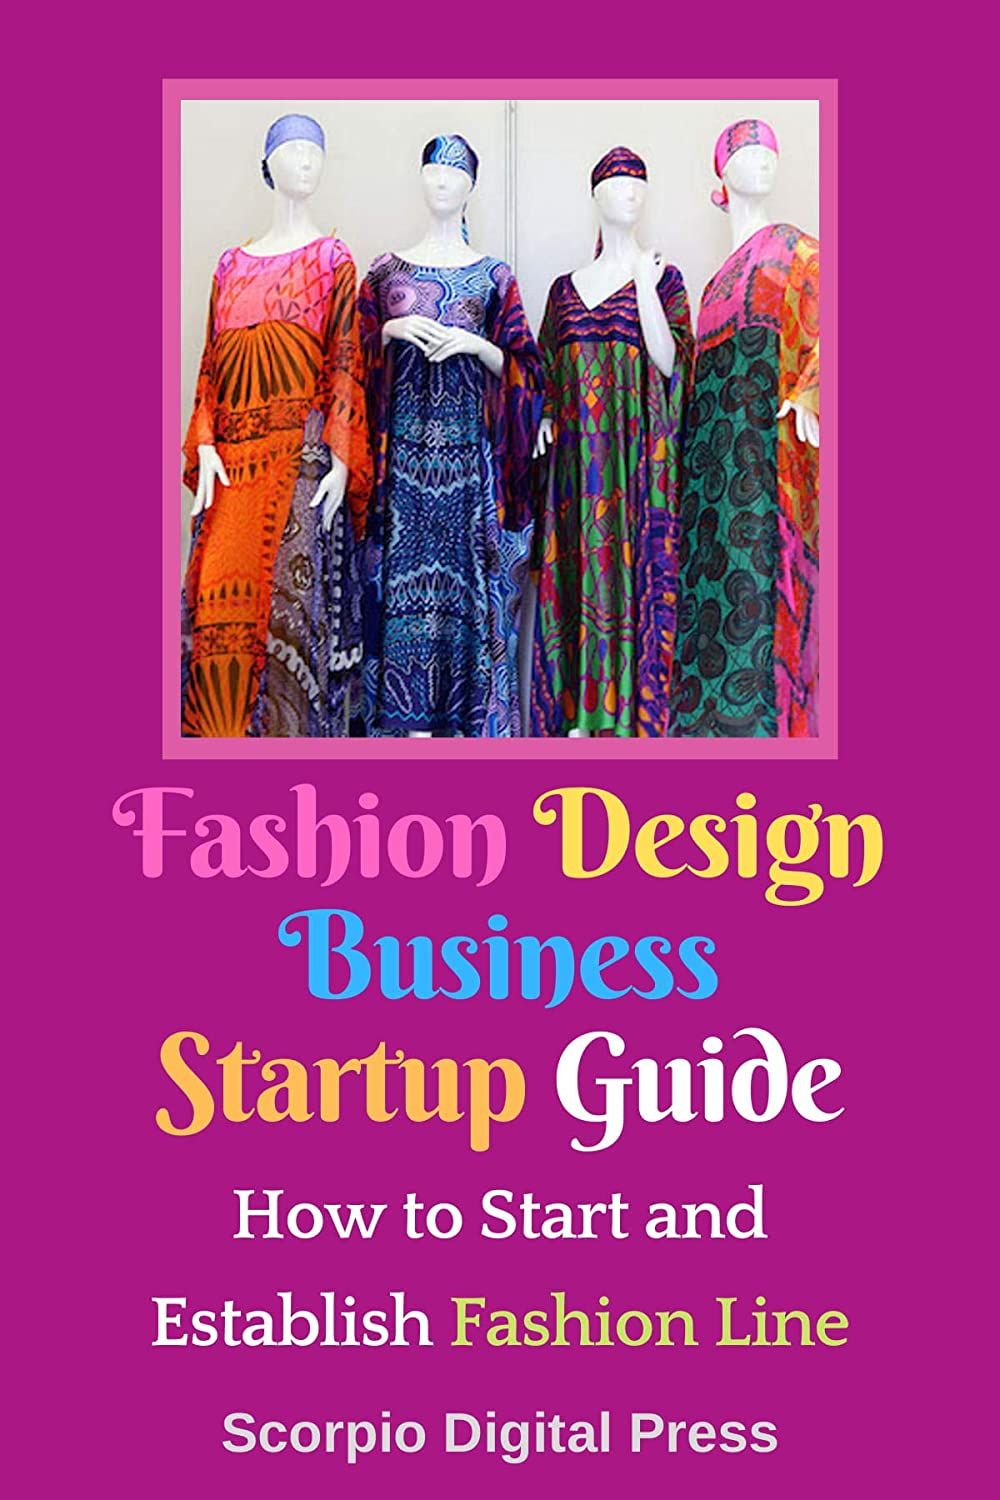 Fashion Design Business Startup Guide : How to Start and